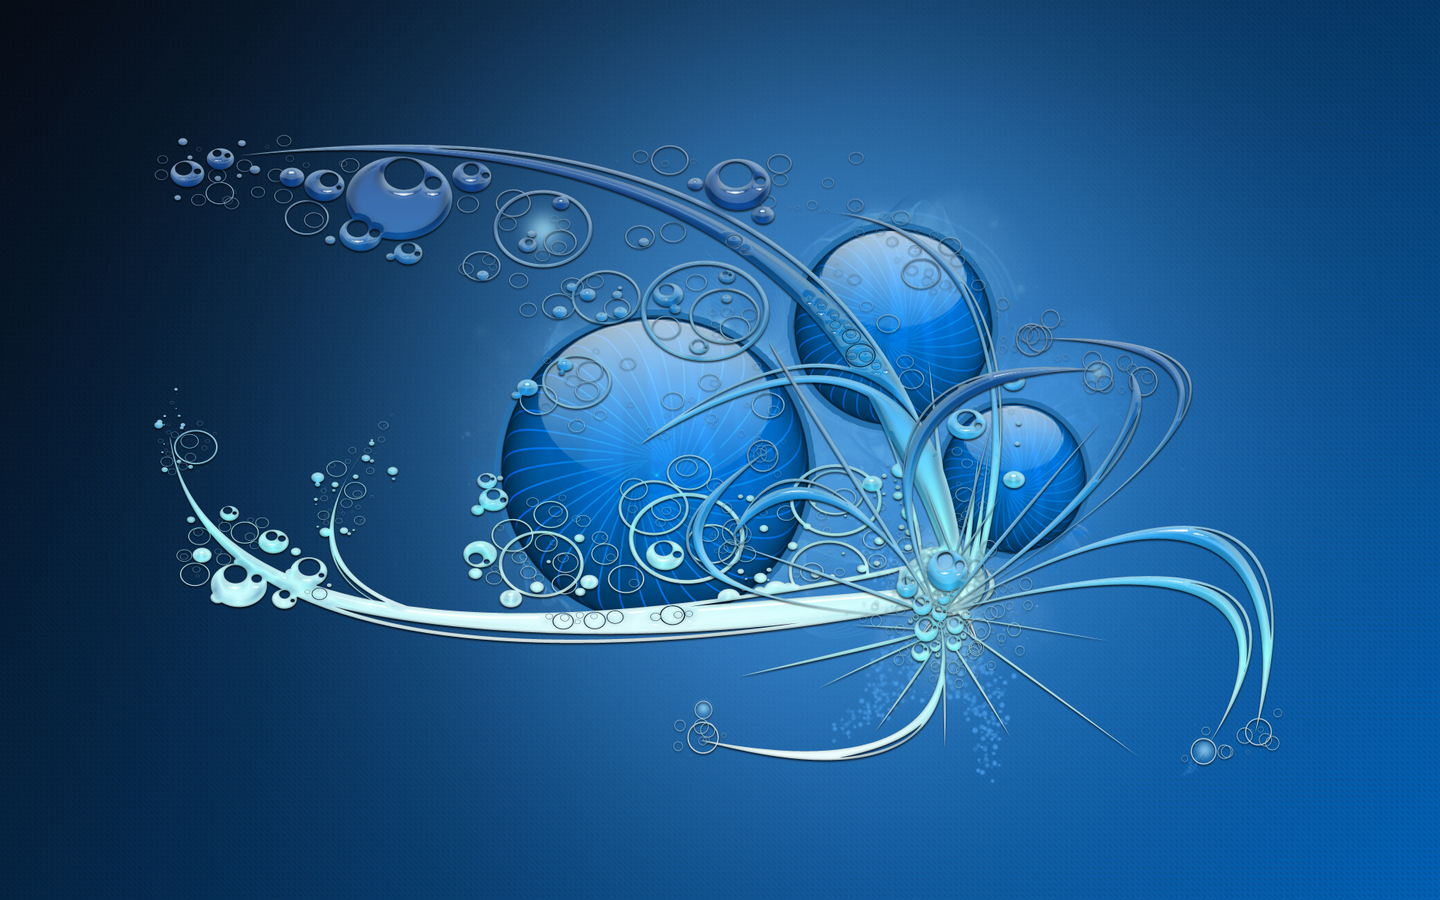 Blue Abstract Widescreen Wallpapers HD Wallpapers 1440x900